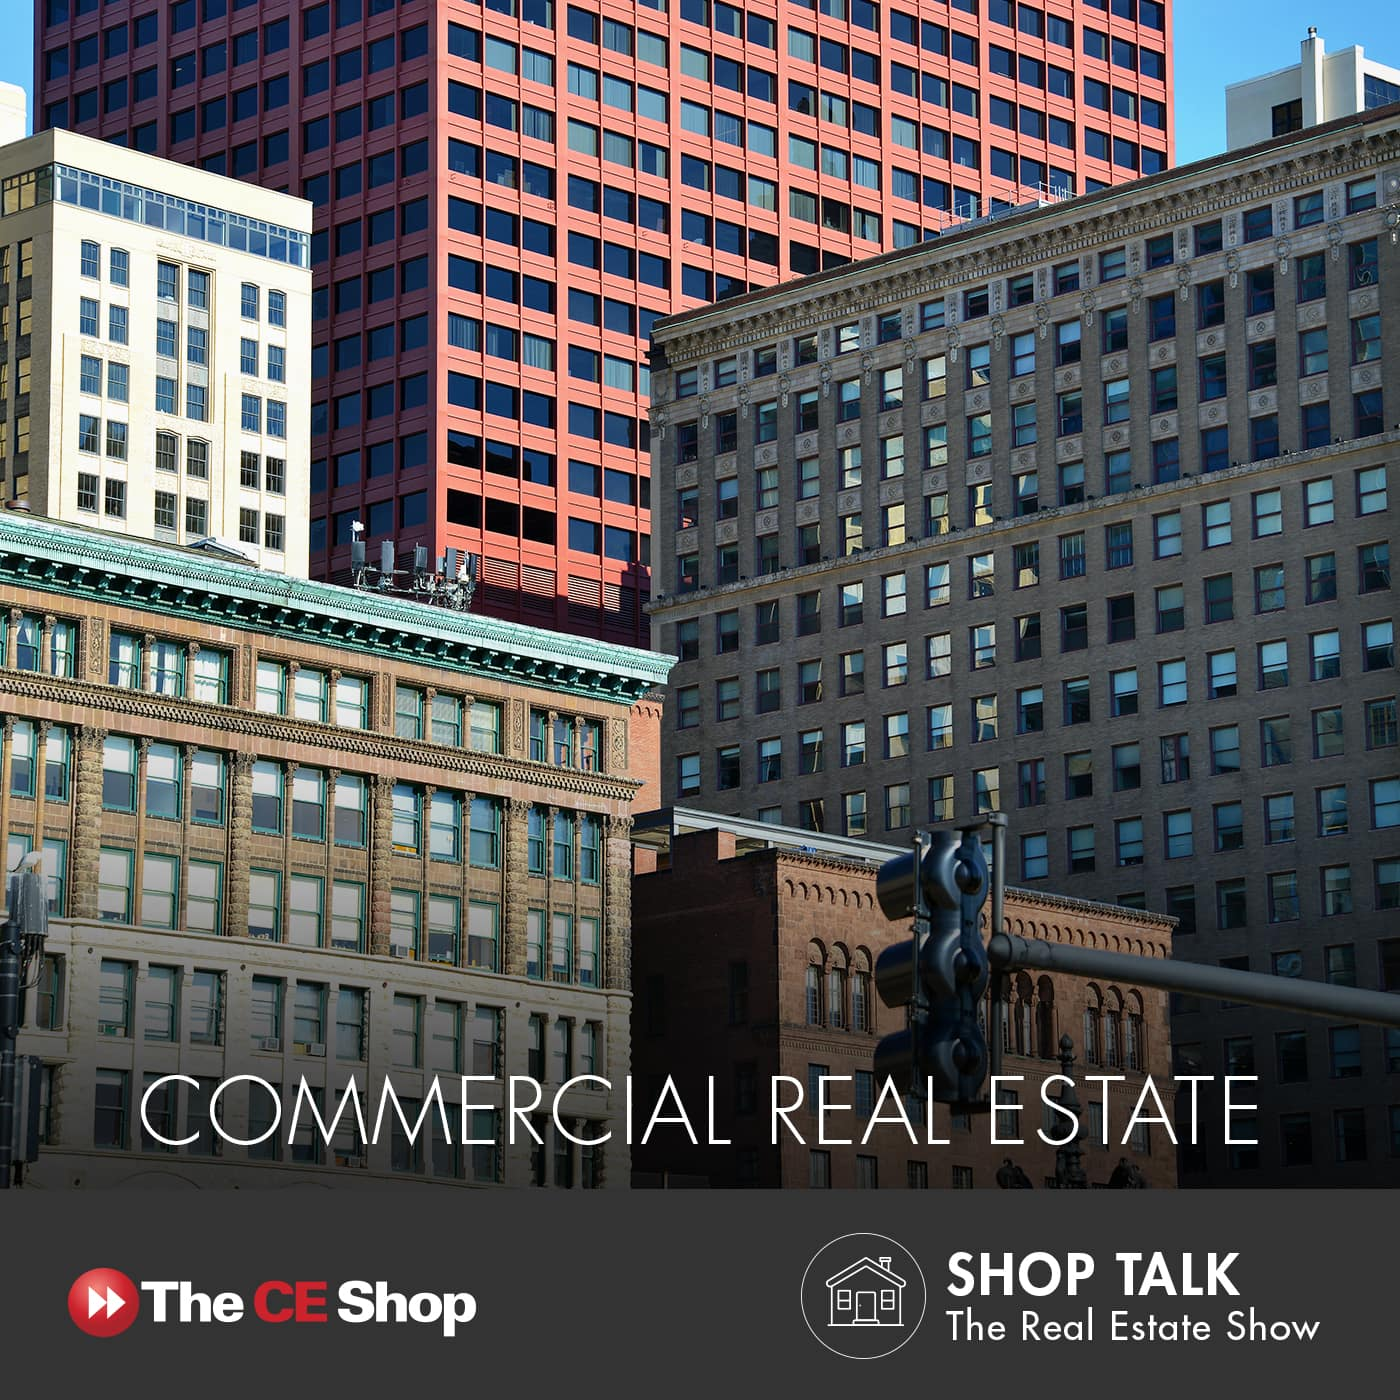 46: Commercial Real Estate